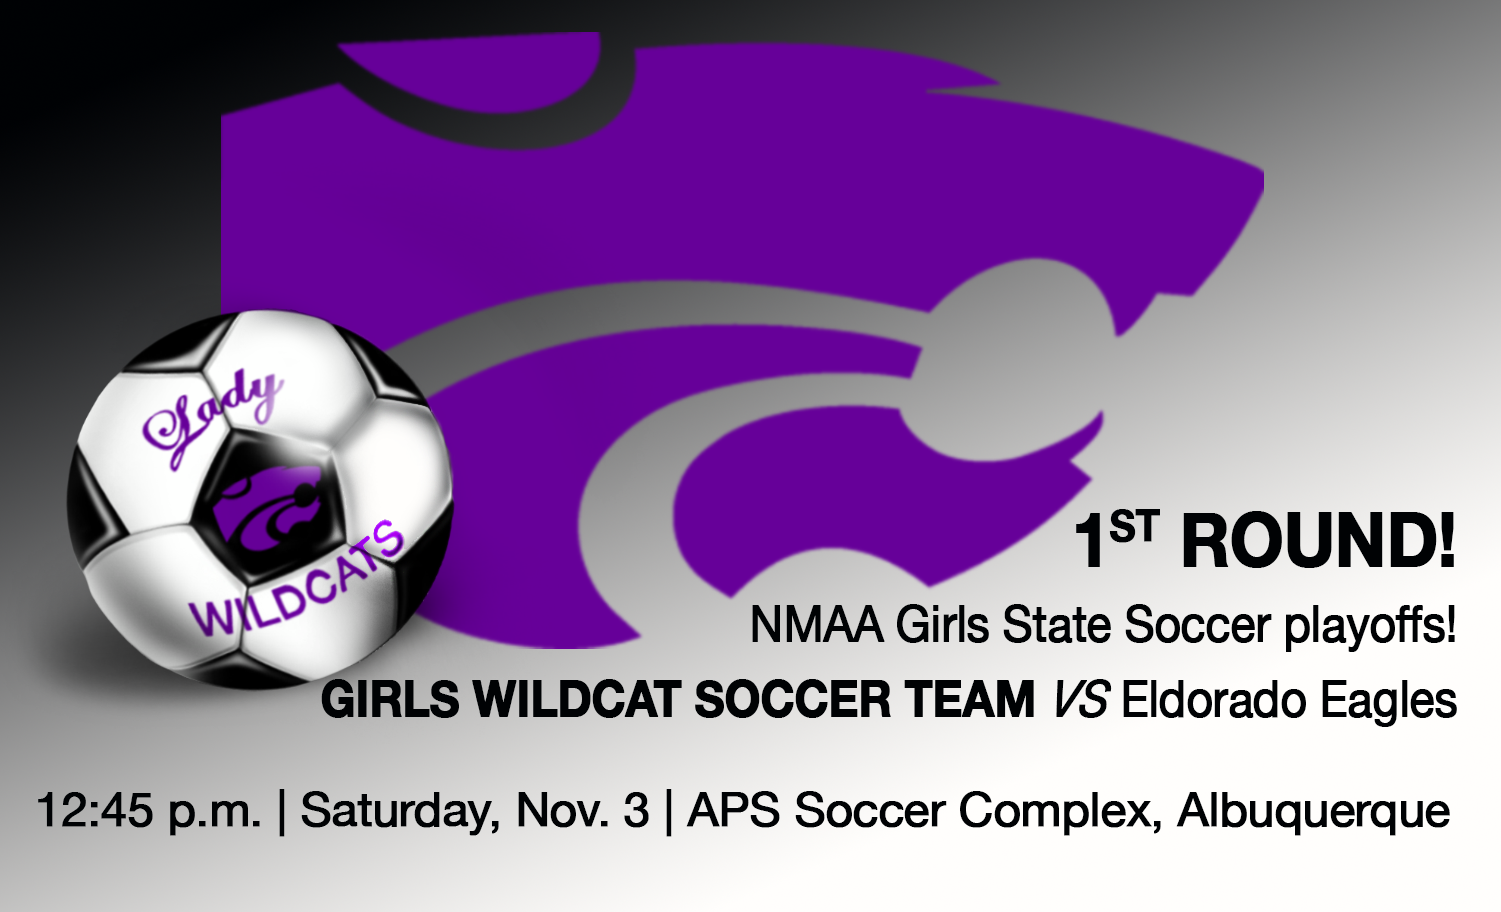 Image of text announcing girls state soccer tournament